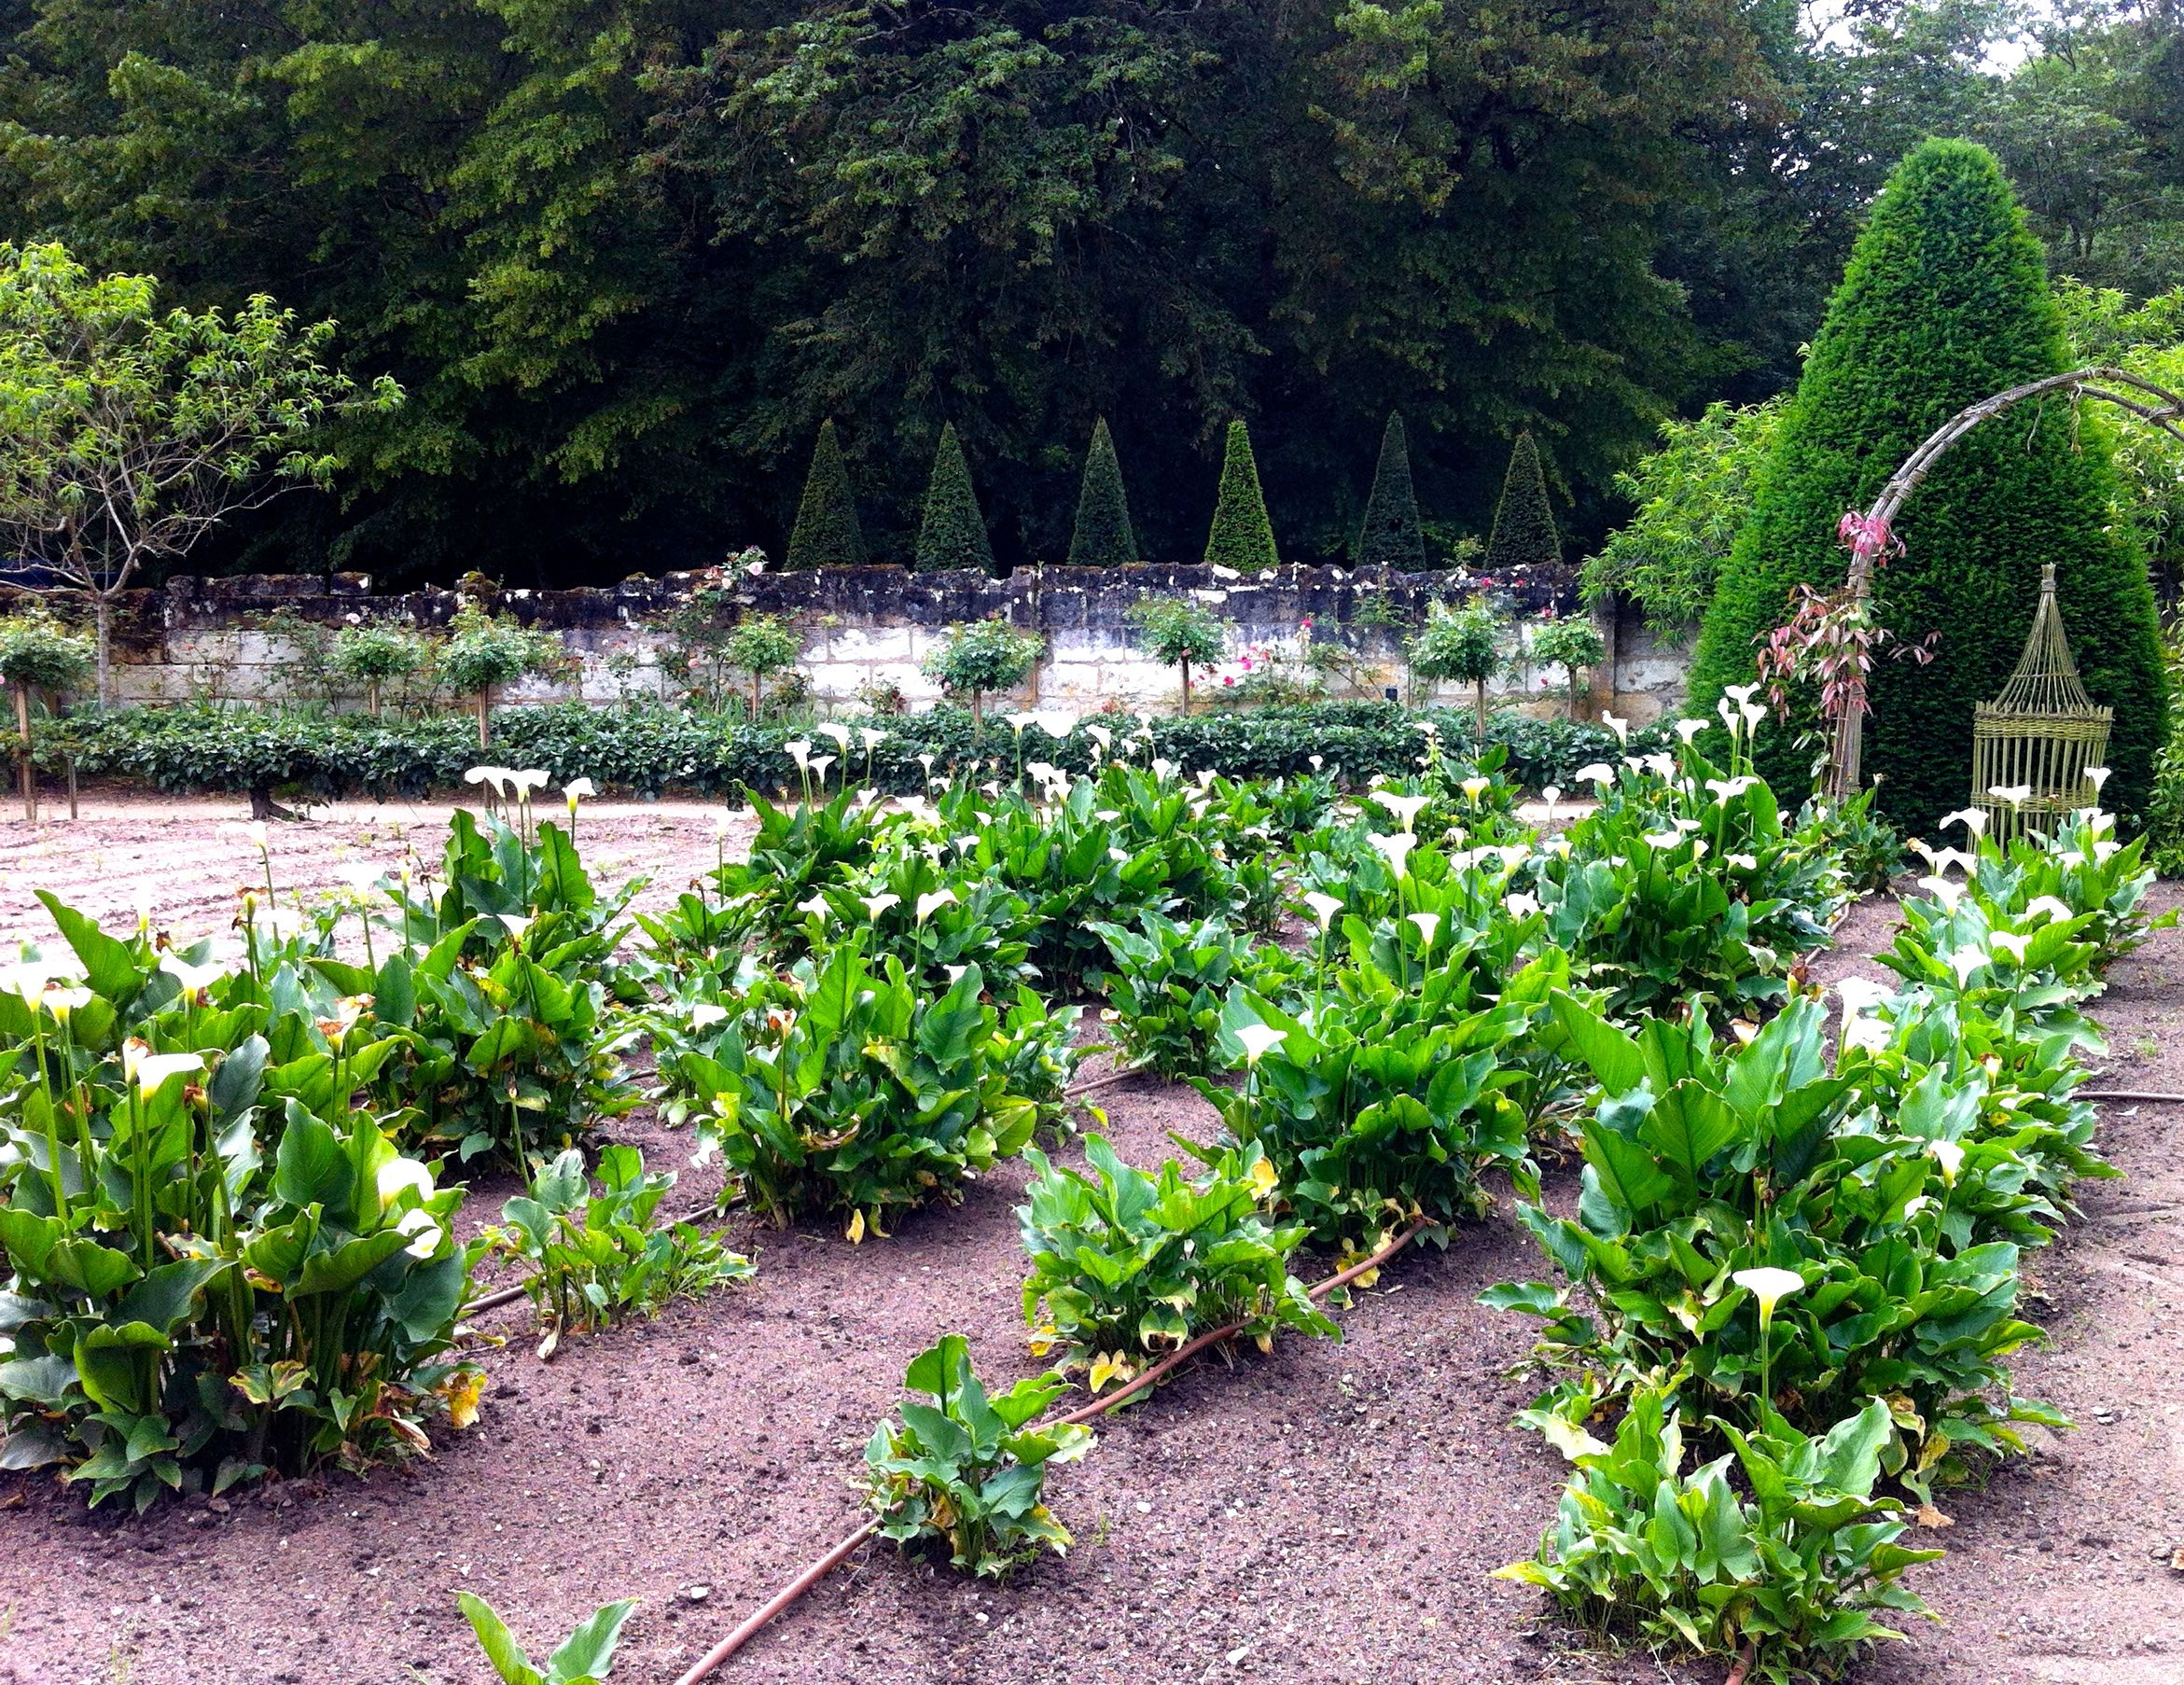 And white lilies also grown in abundance in the flower garden at chateau de chenonceau